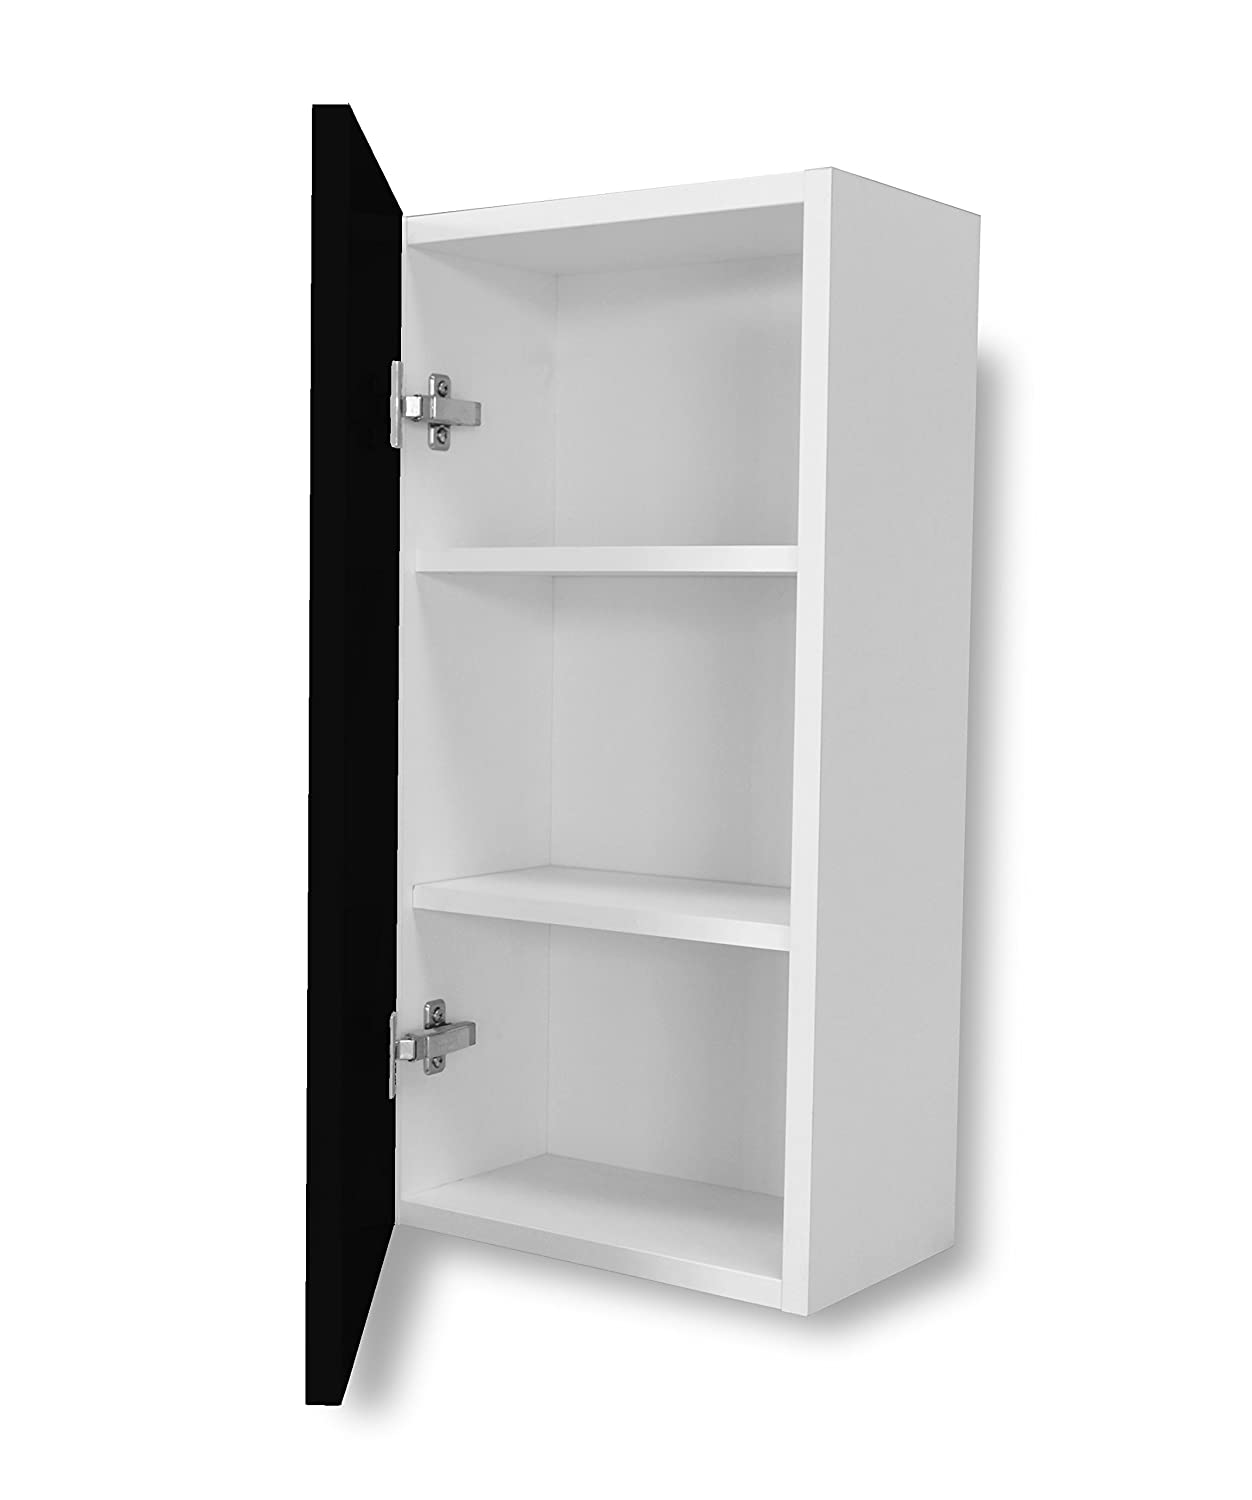 Aleghe Smooth Bathroom Side Cabinet – Black Gloss Avant Area Europe SL CPLL4A35700